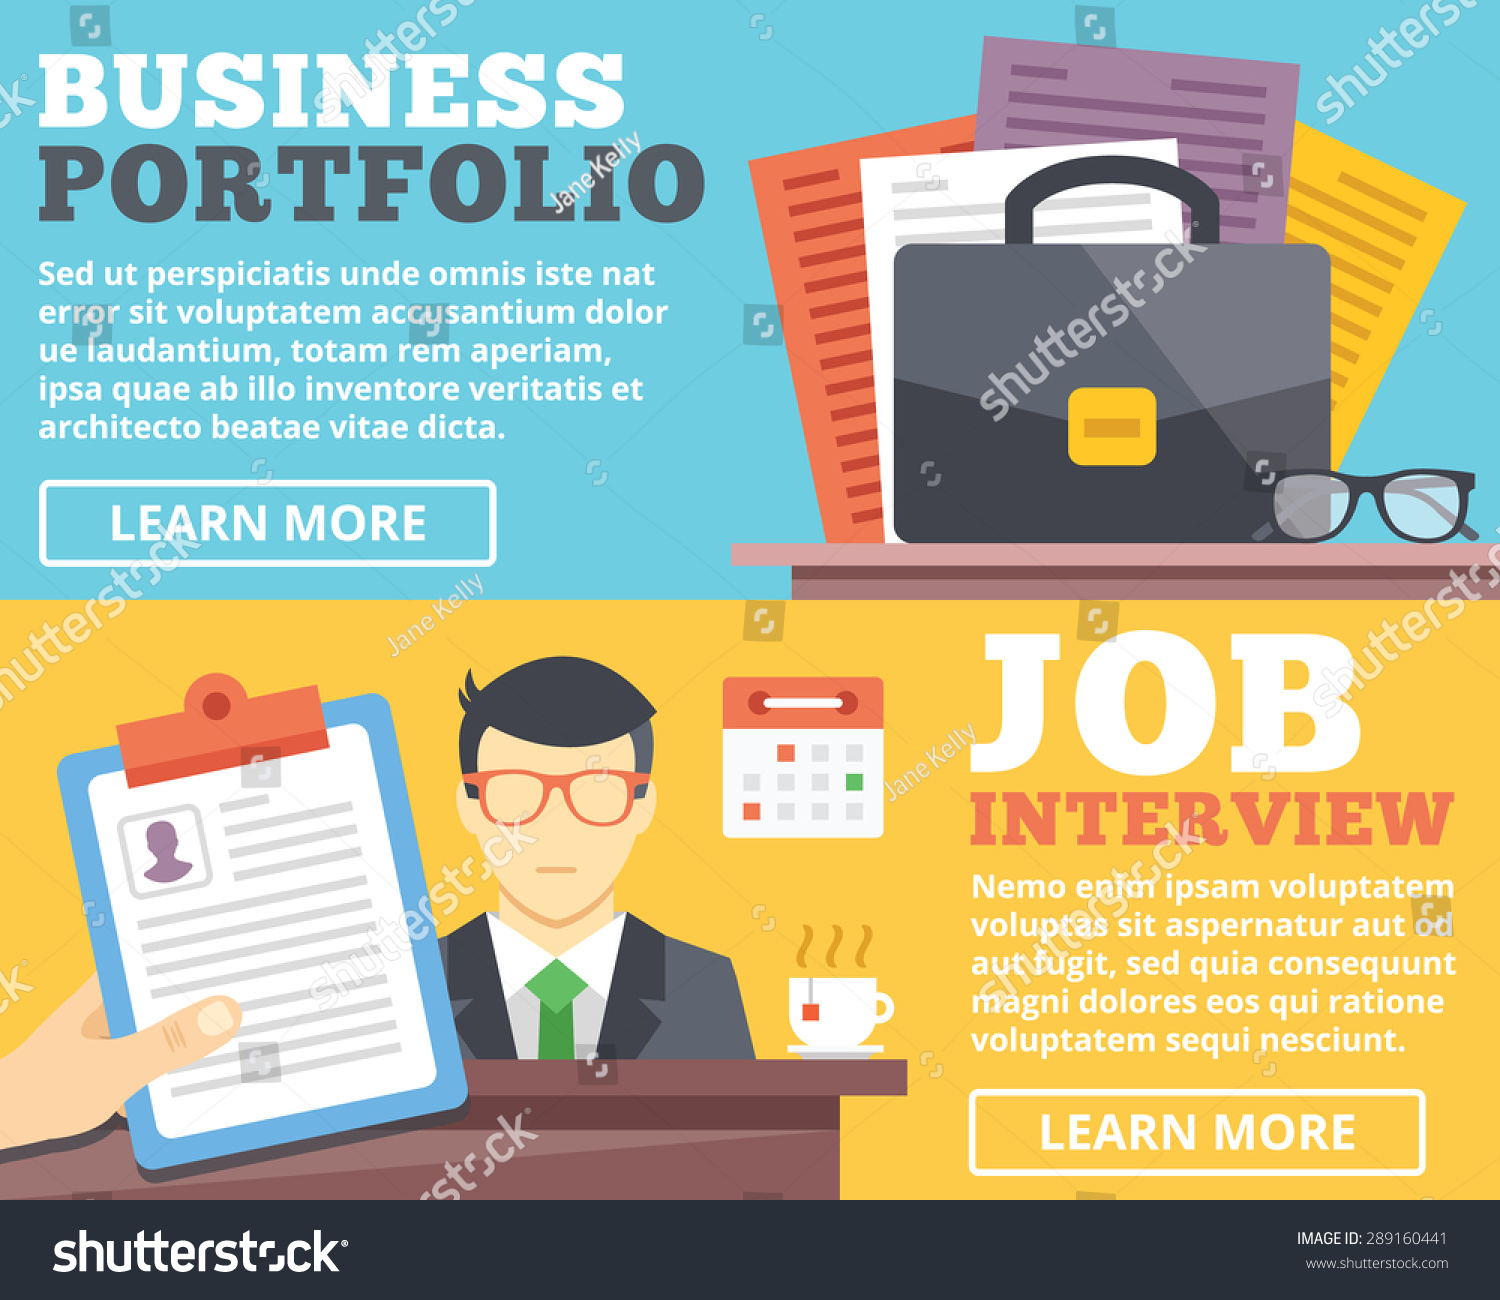 business portfolio job interview flat illustration stock vector business portfolio job interview flat illustration concepts set flat design concepts for web banners